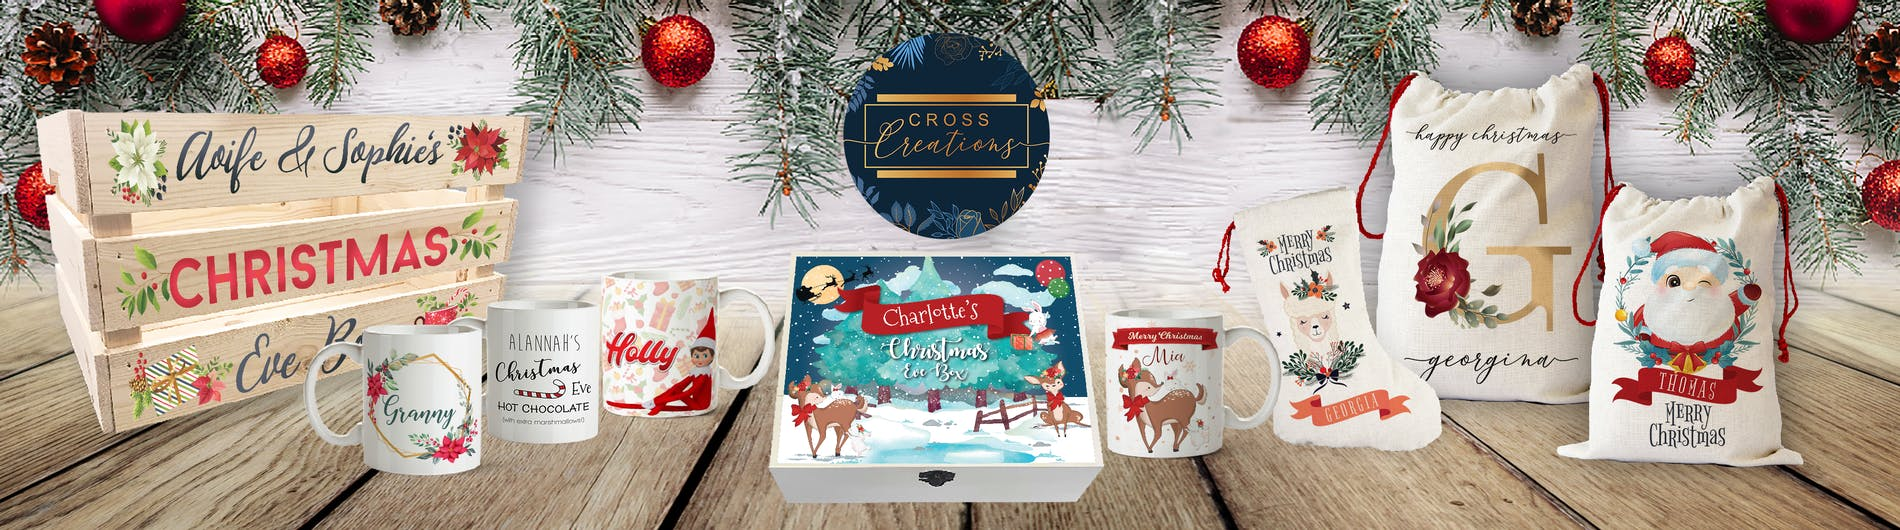 Personalised Christmas Gifts & Christmas Decorations by Cross Creations